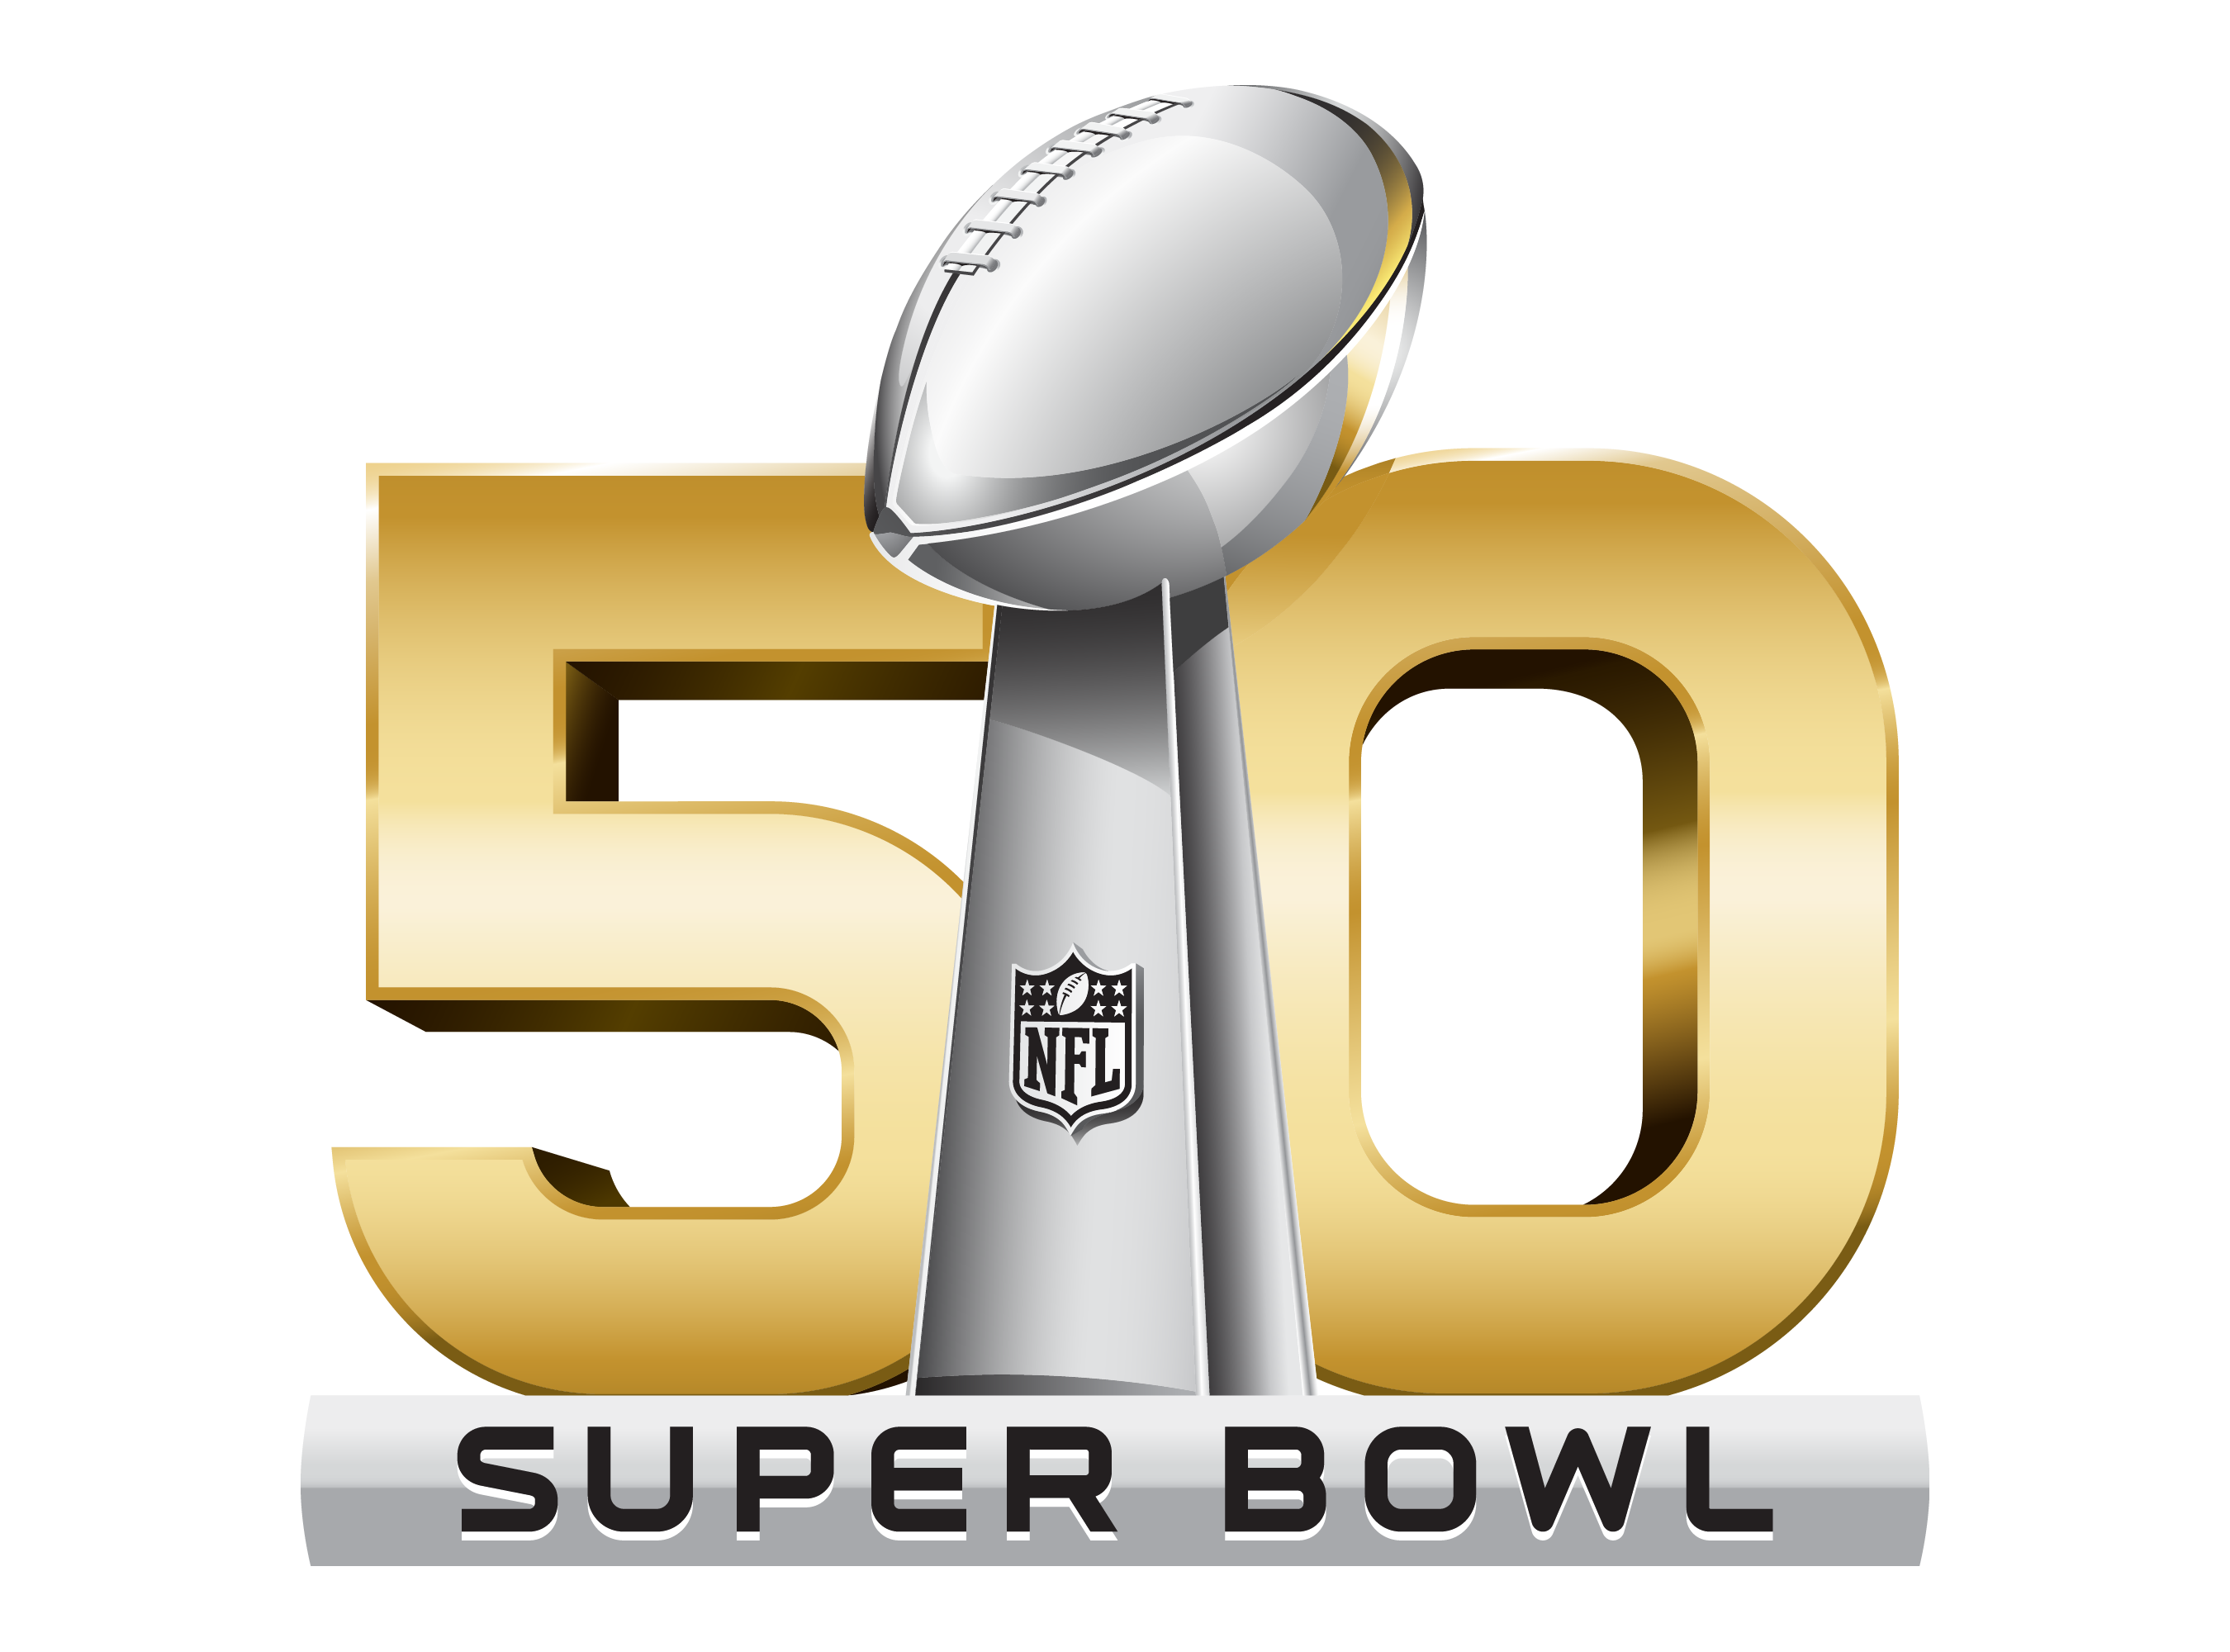 Pictures Of The Super Bowl 50 Logo - 12.000 vector logos